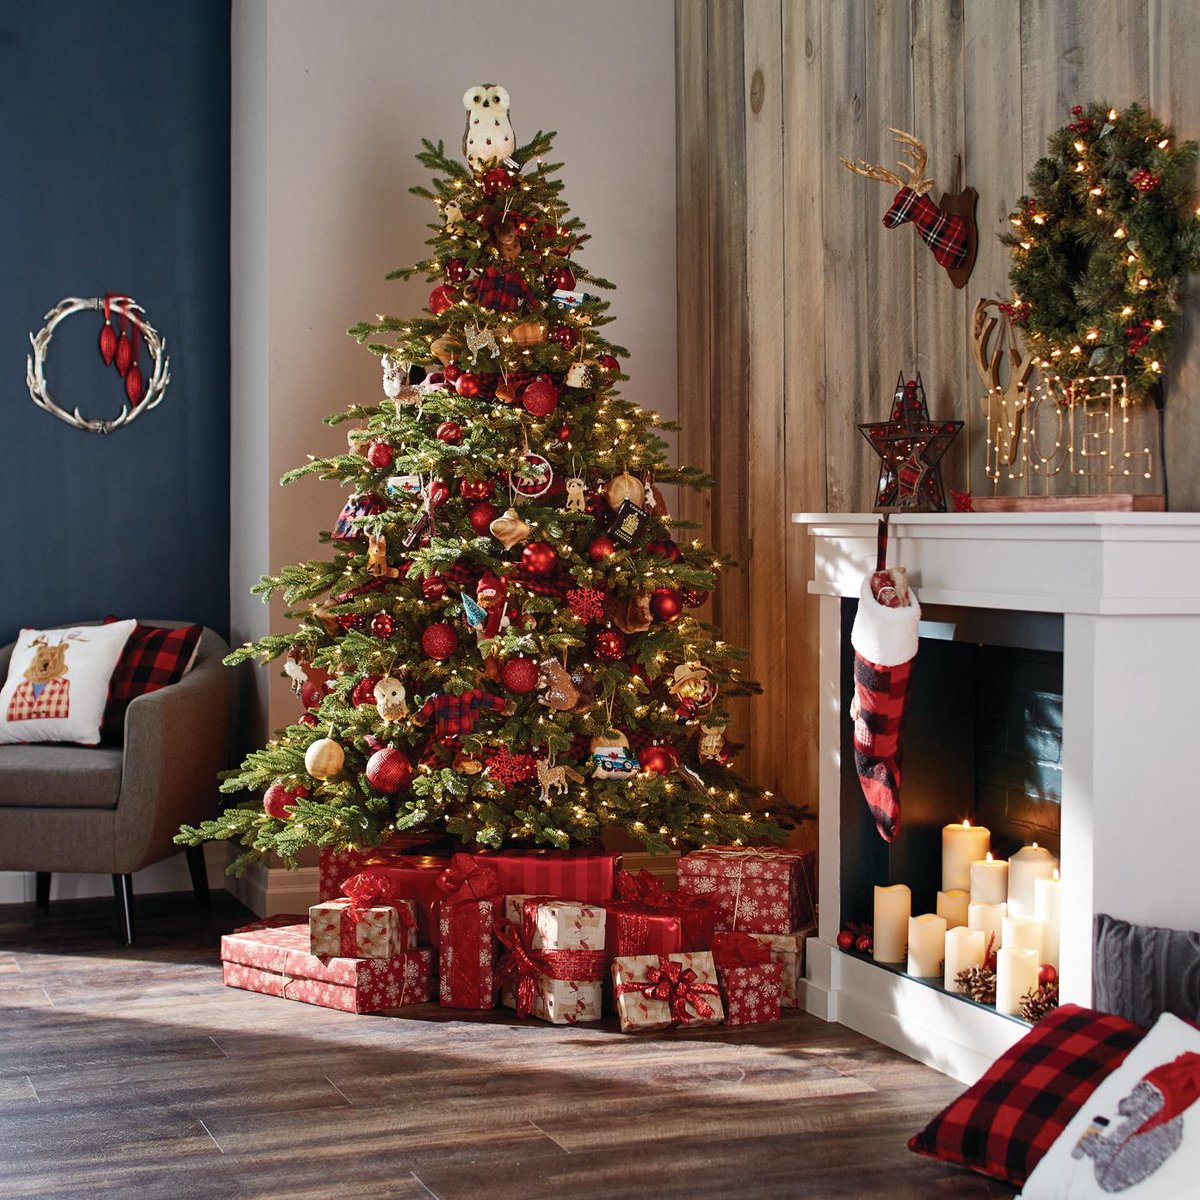 canadian tire on twitter celebrate christmas in canada bold hues festive plaids and rustic accents make the perfect traditional setting - How Does Canada Celebrate Christmas